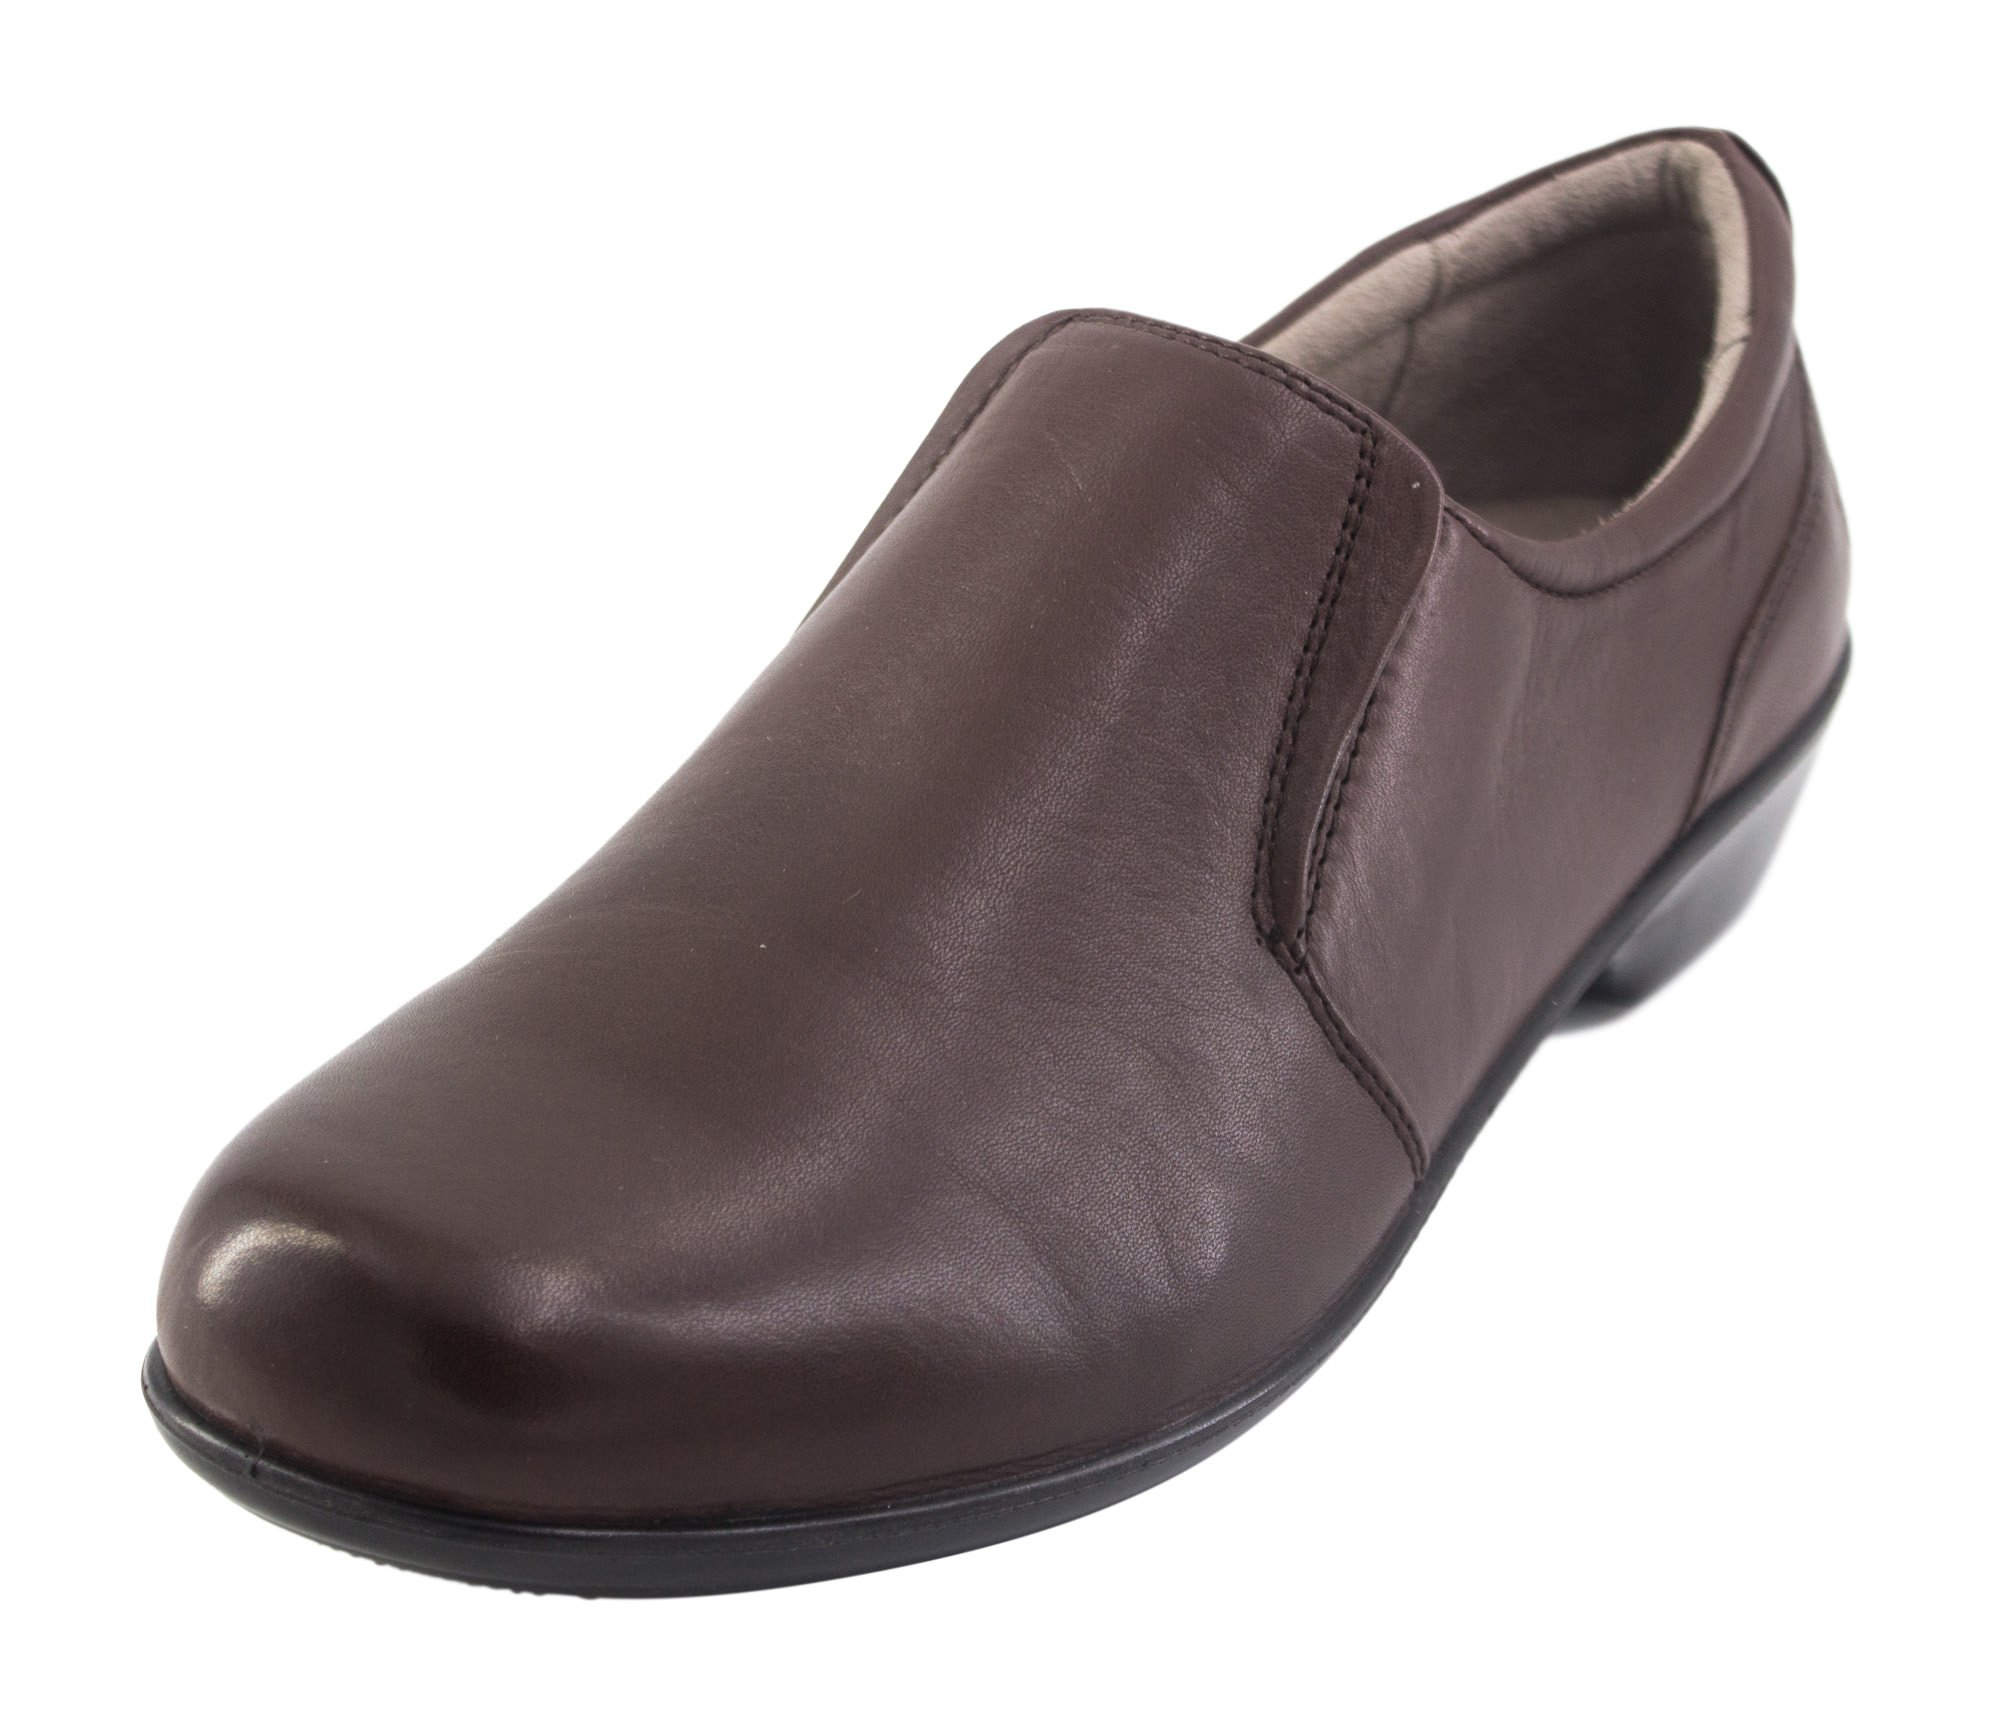 Naturalizer Women's Brody Slip-On Work Shoe, Brown, Size 7.5 M